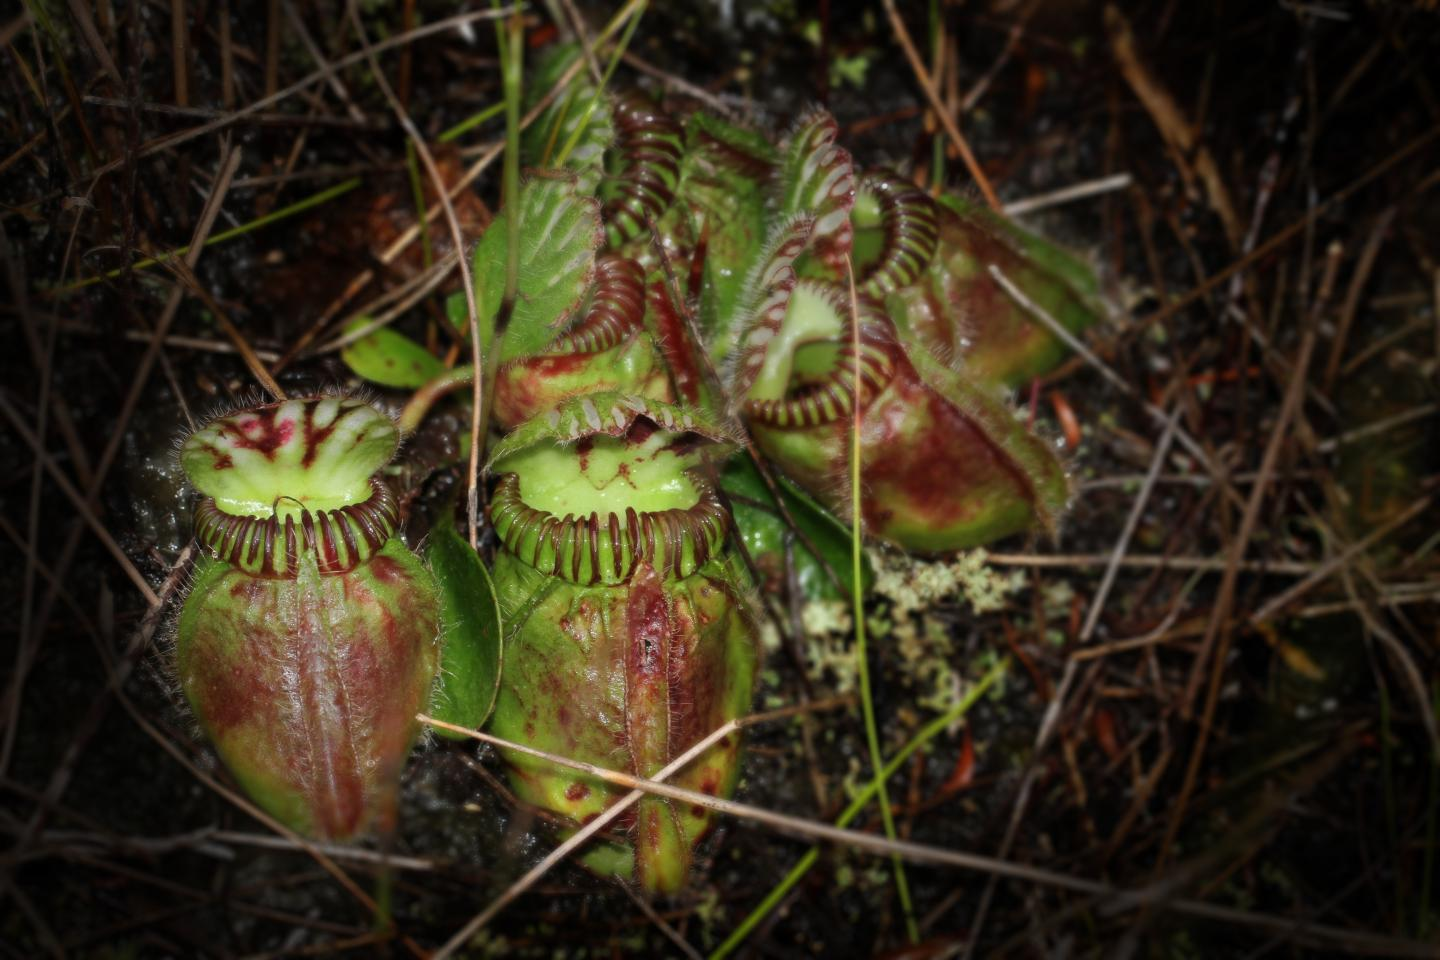 A team of researchers have set out to study the genetics of the pitcher plant and trace the evolution of carnivorous plants.